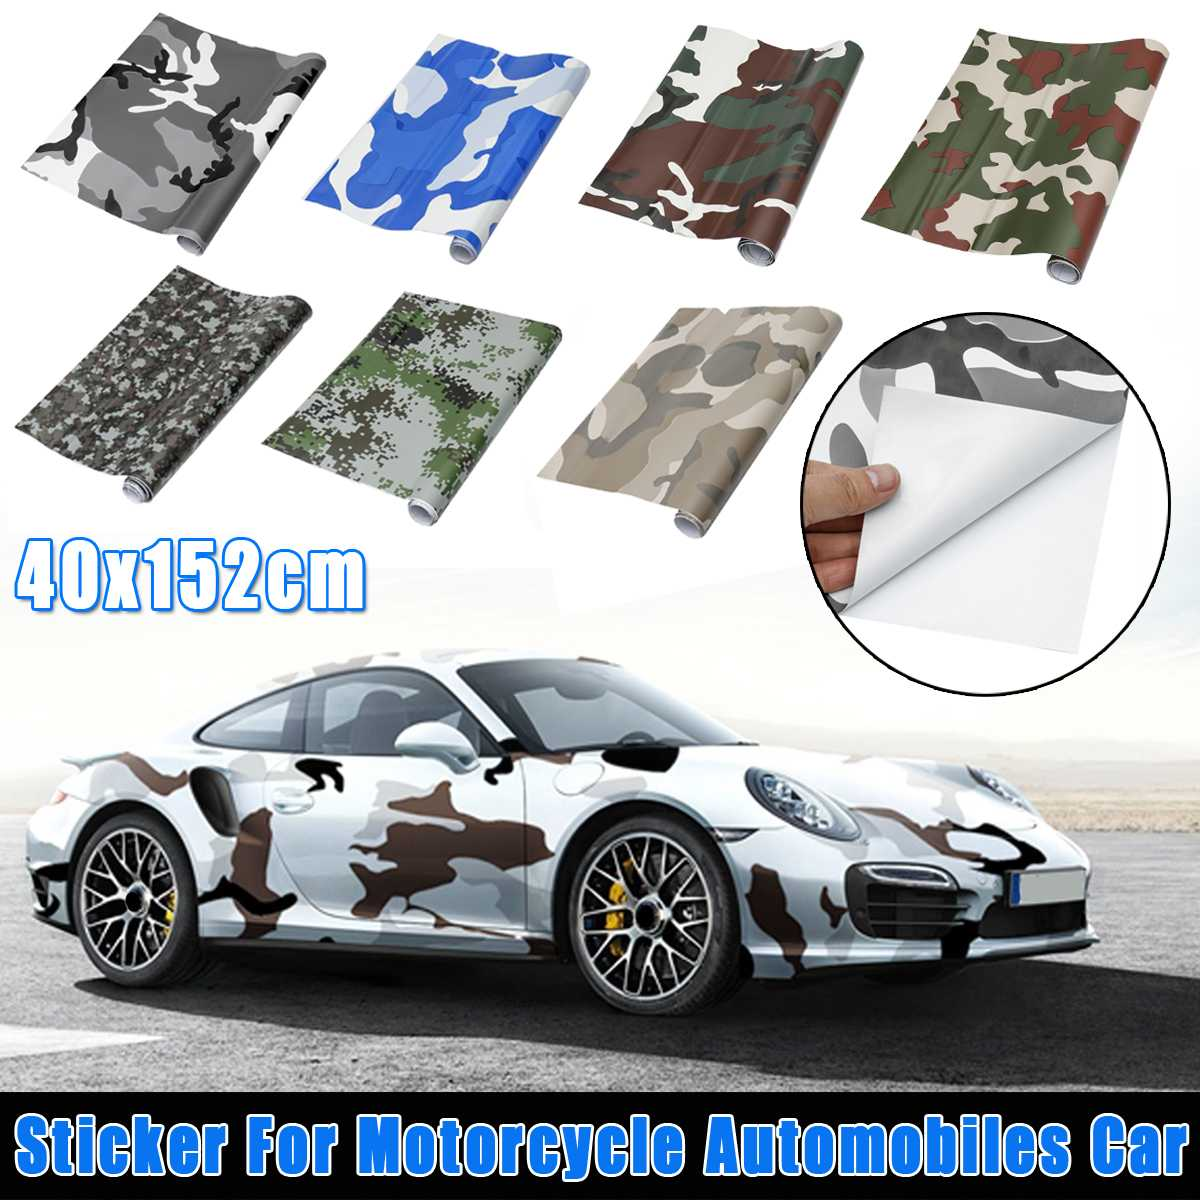 40x152cm Motorcycle Car <font><b>Stickers</b></font> Decals DIY <font><b>Camouflage</b></font> Vinyl Film Car Wraper Skin Film For Car <font><b>Bike</b></font> Laptop Scooter Motorcycle image